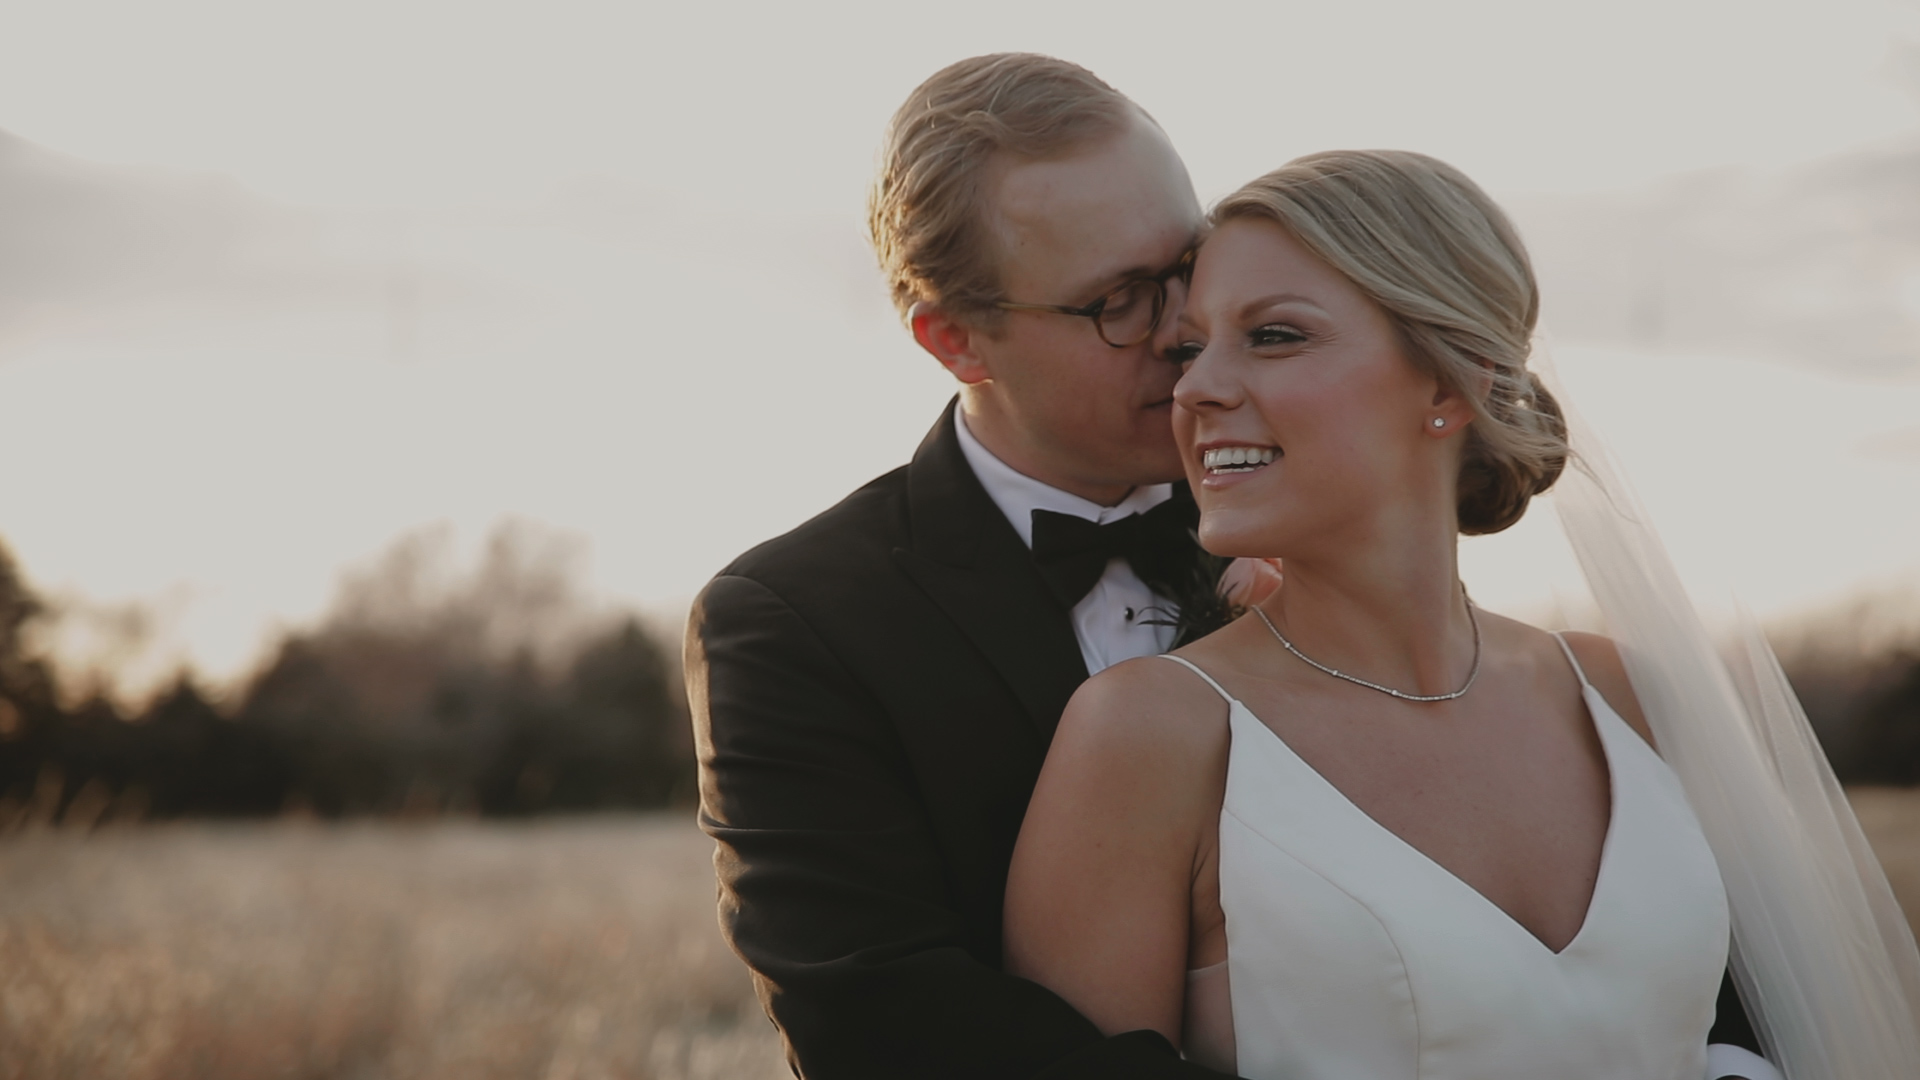 Bethany  + David  | Wichita, Kansas | Brick and Mortar